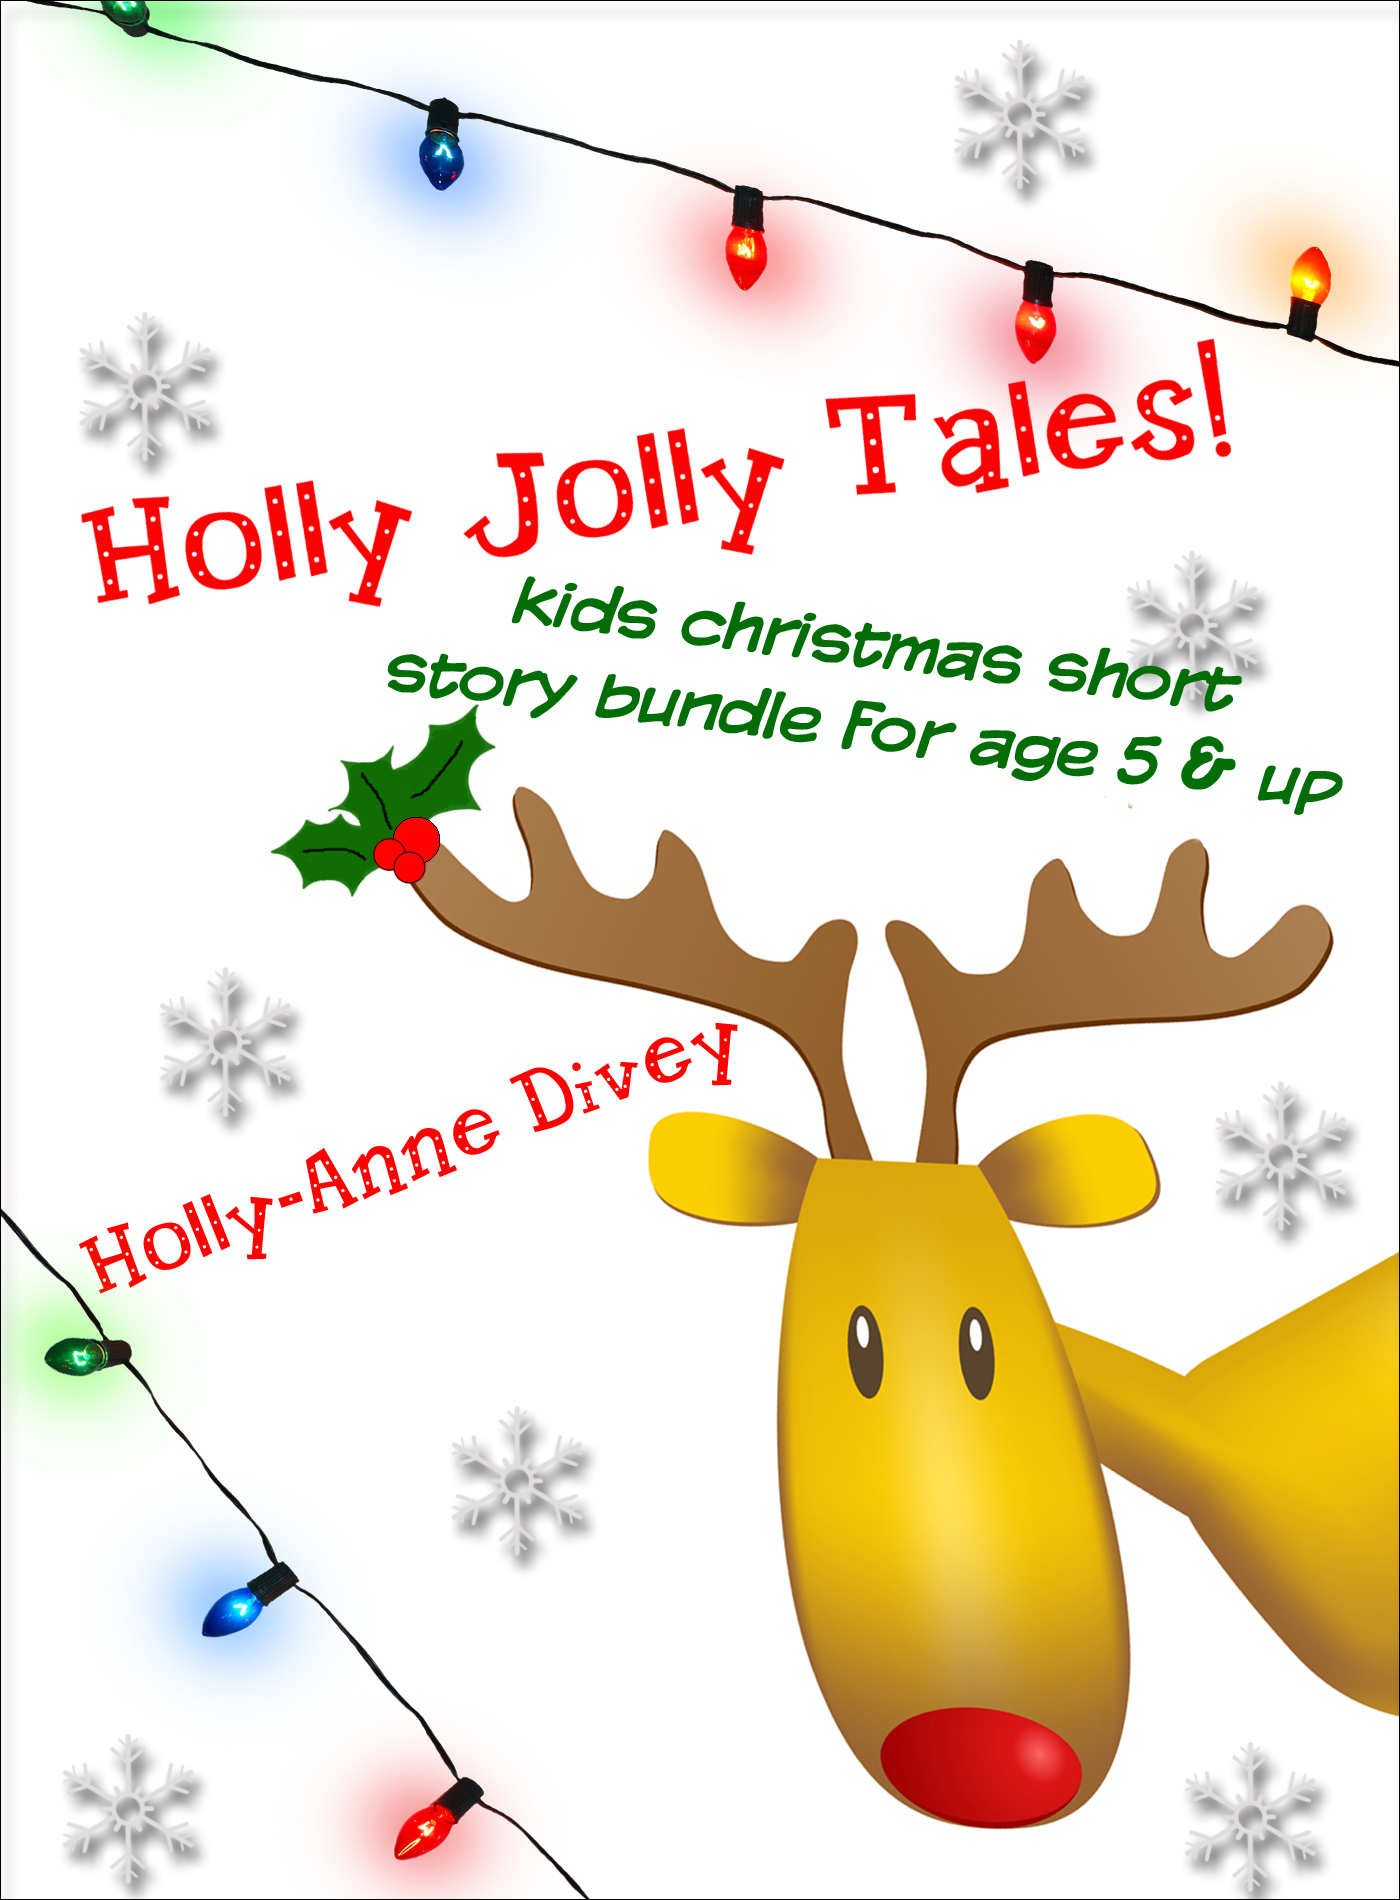 kids christmas short story bundle for age 5 up - Christmas Story Bundled Up